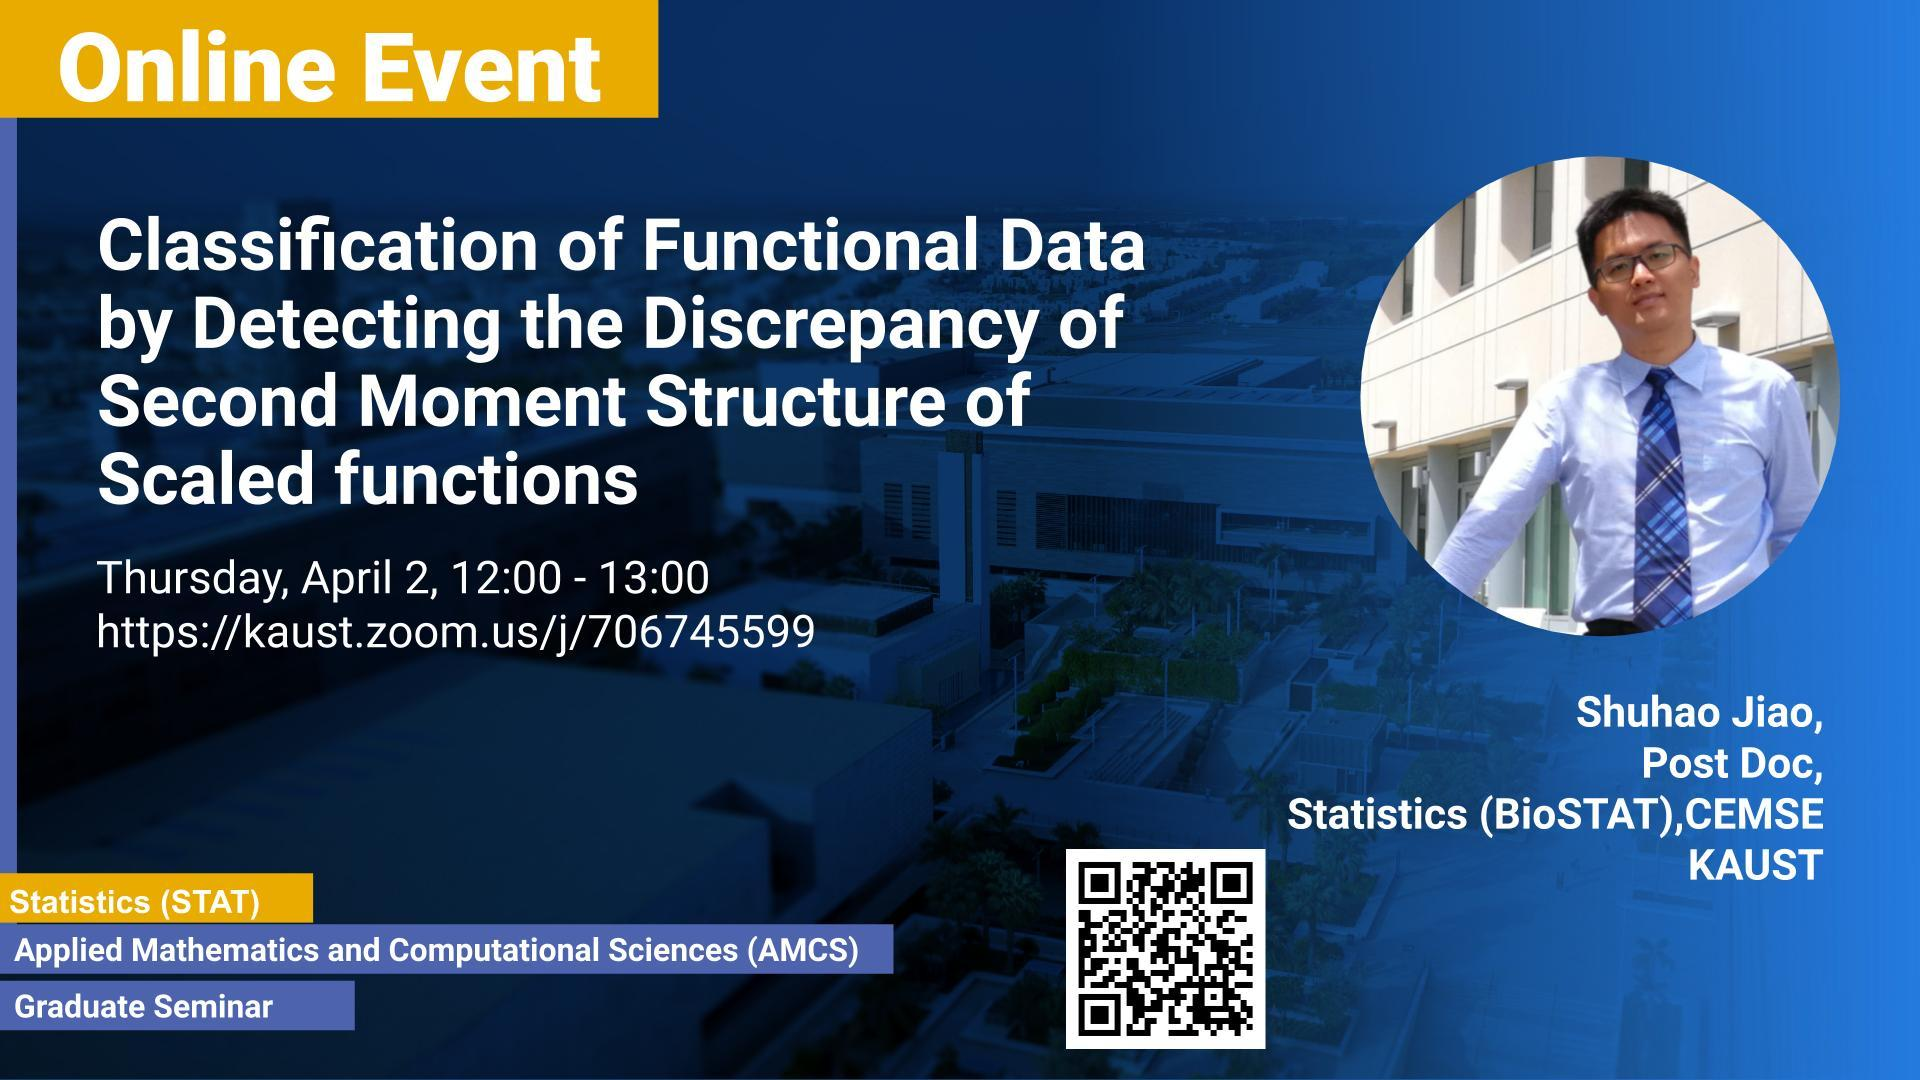 KAUST-CEMSE-AMCS-STAT-Graduate-Seminar-Shuhao Jiao-Functional Data